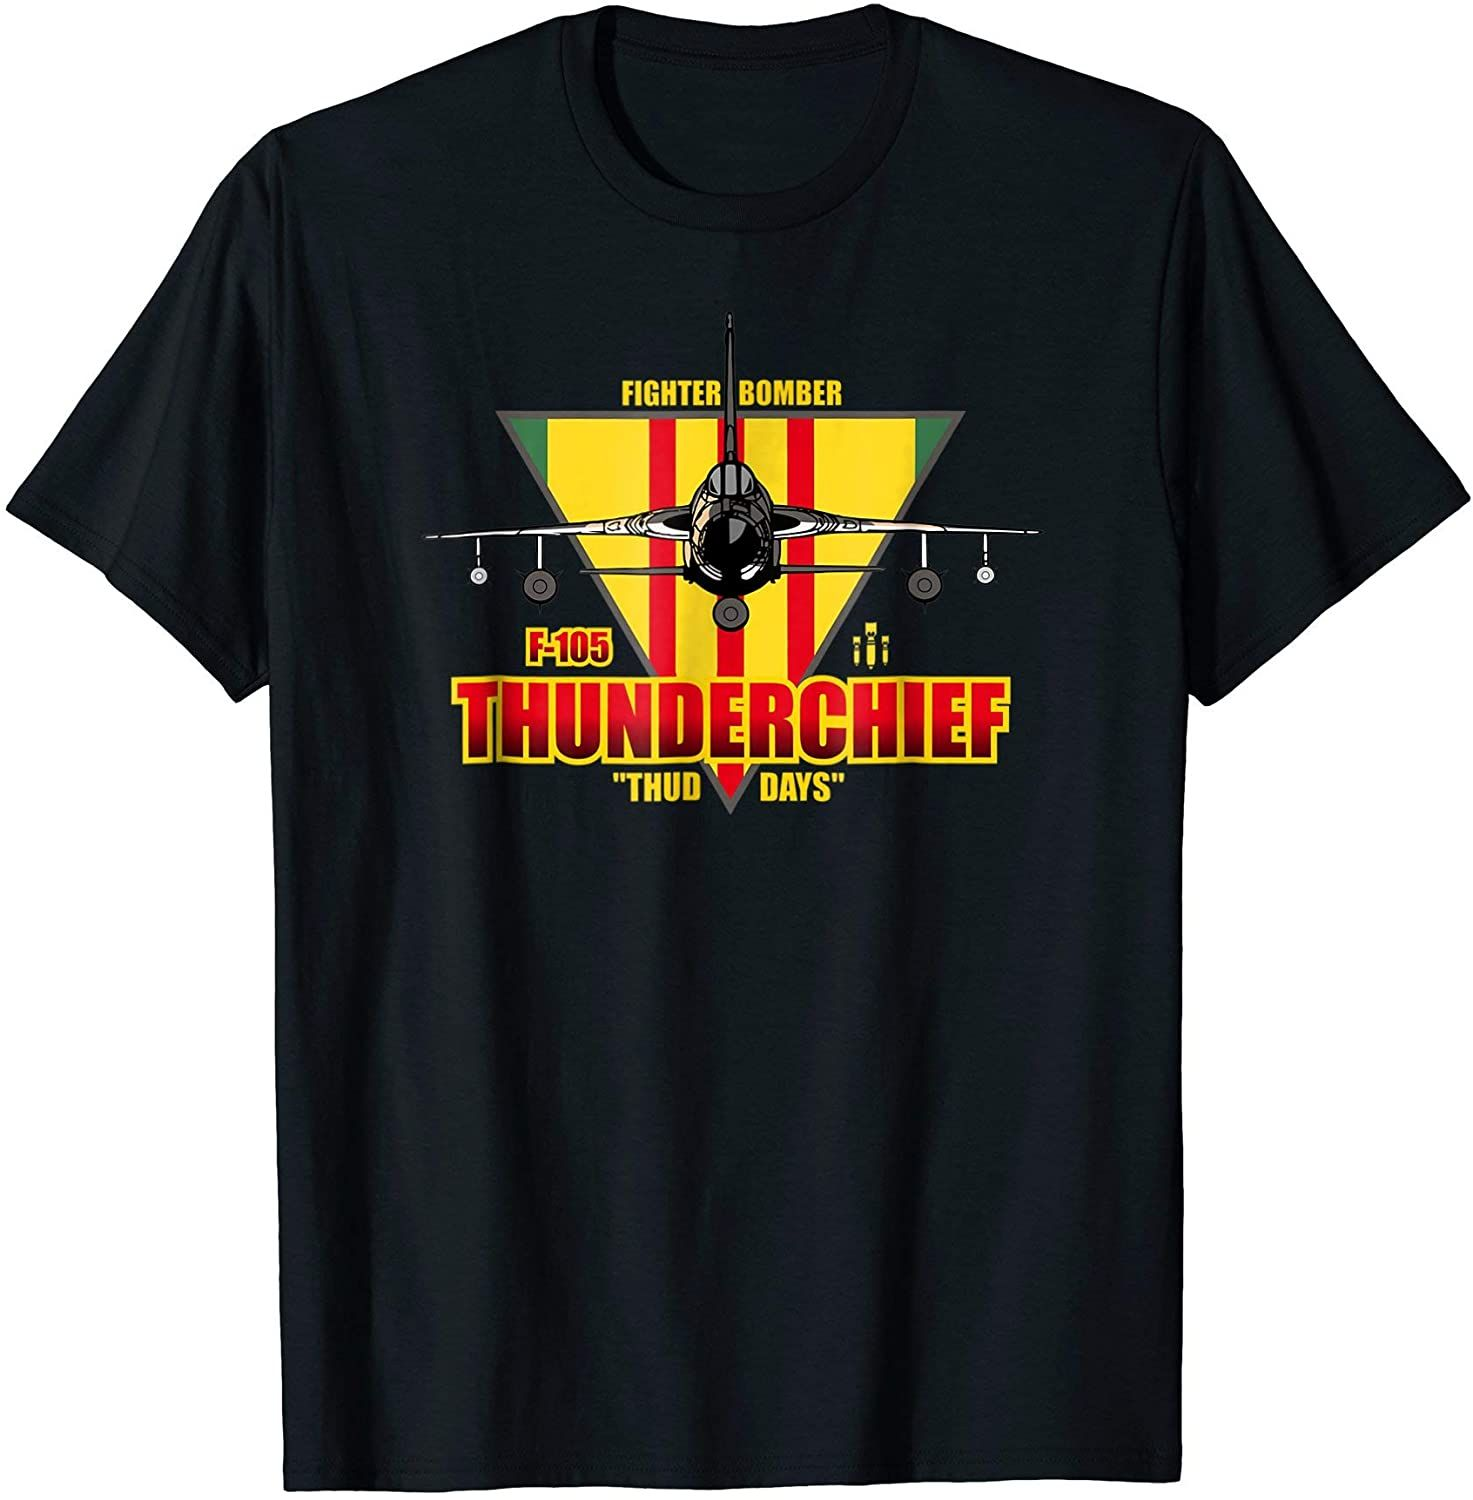 F105 Thunderchief Tee Air Force Fighter Bomber Tshirt